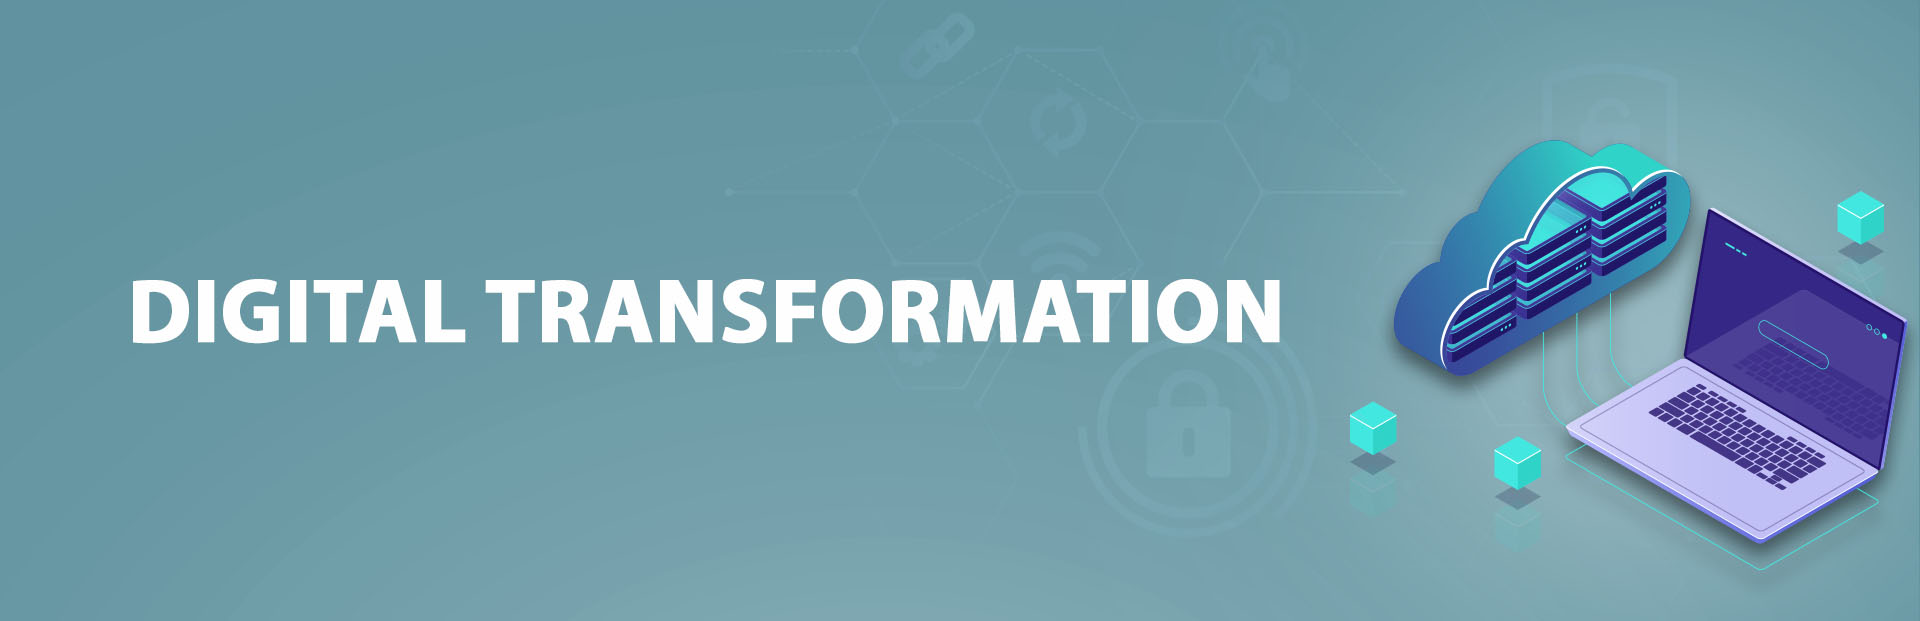 Is Digital Transformation Dead? How to improve business productivity during COVID?